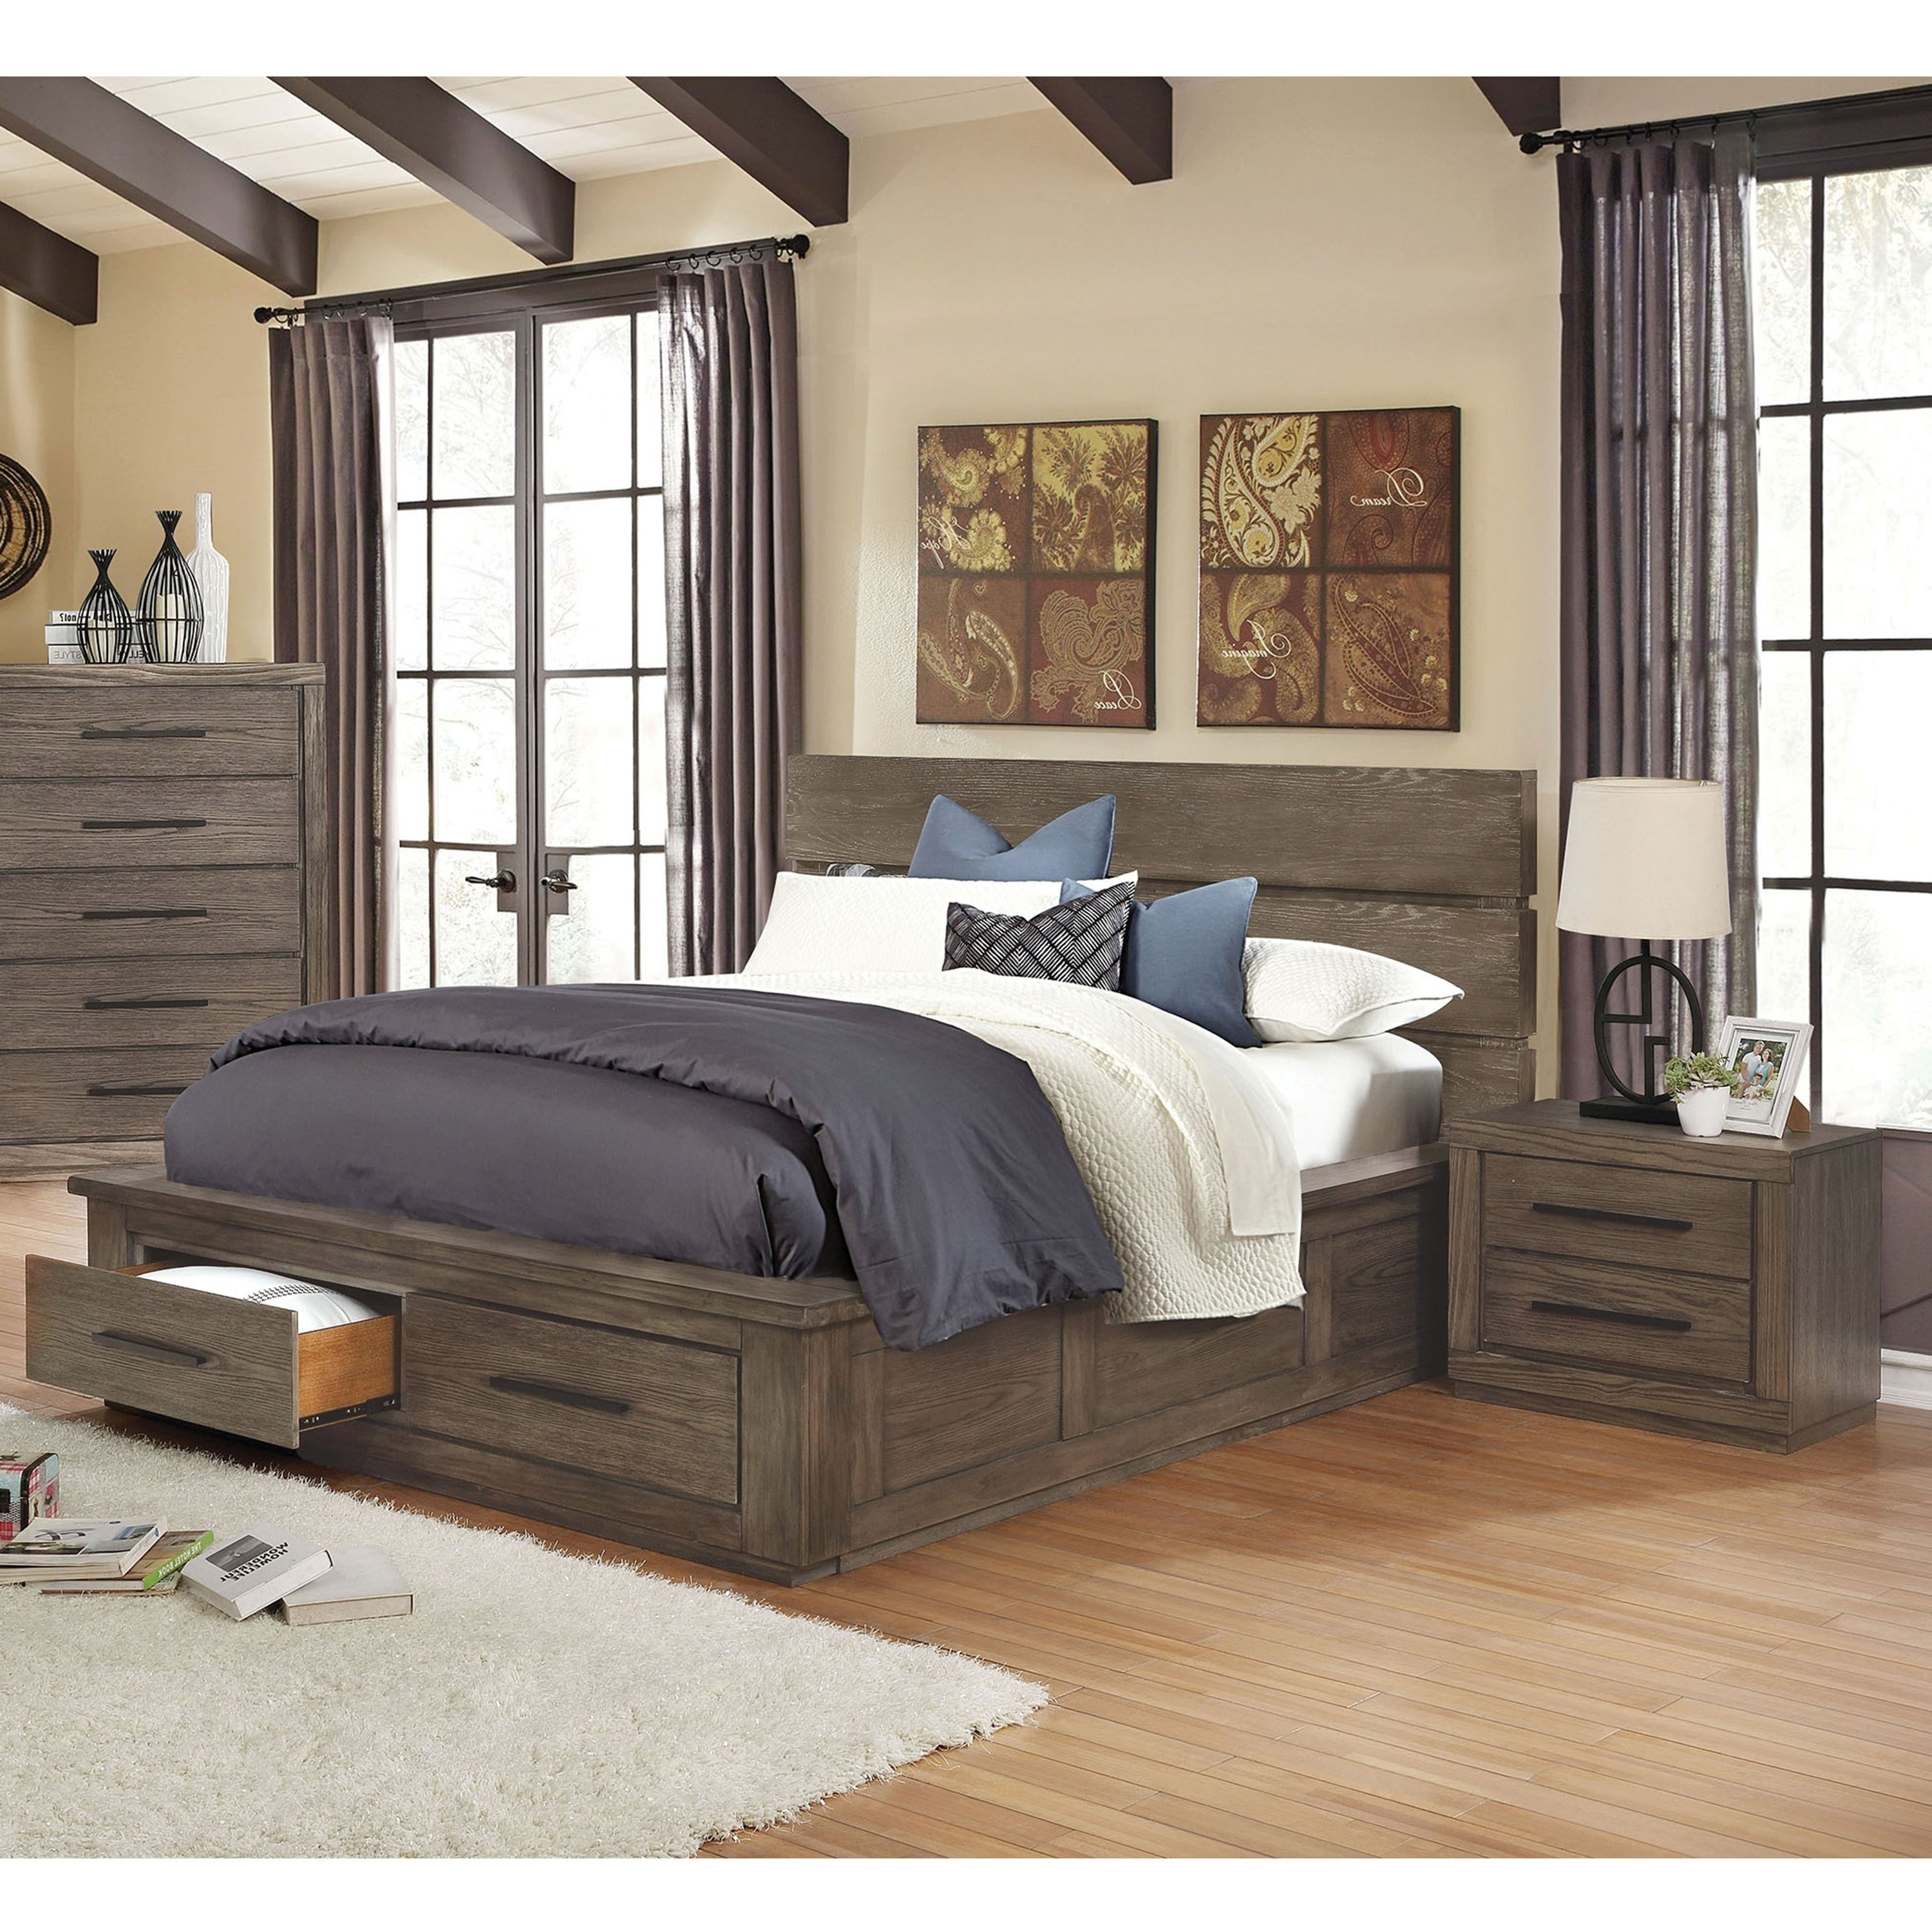 Carbon Loft Lamar Rustic California King Storage Bed 2-piece Set